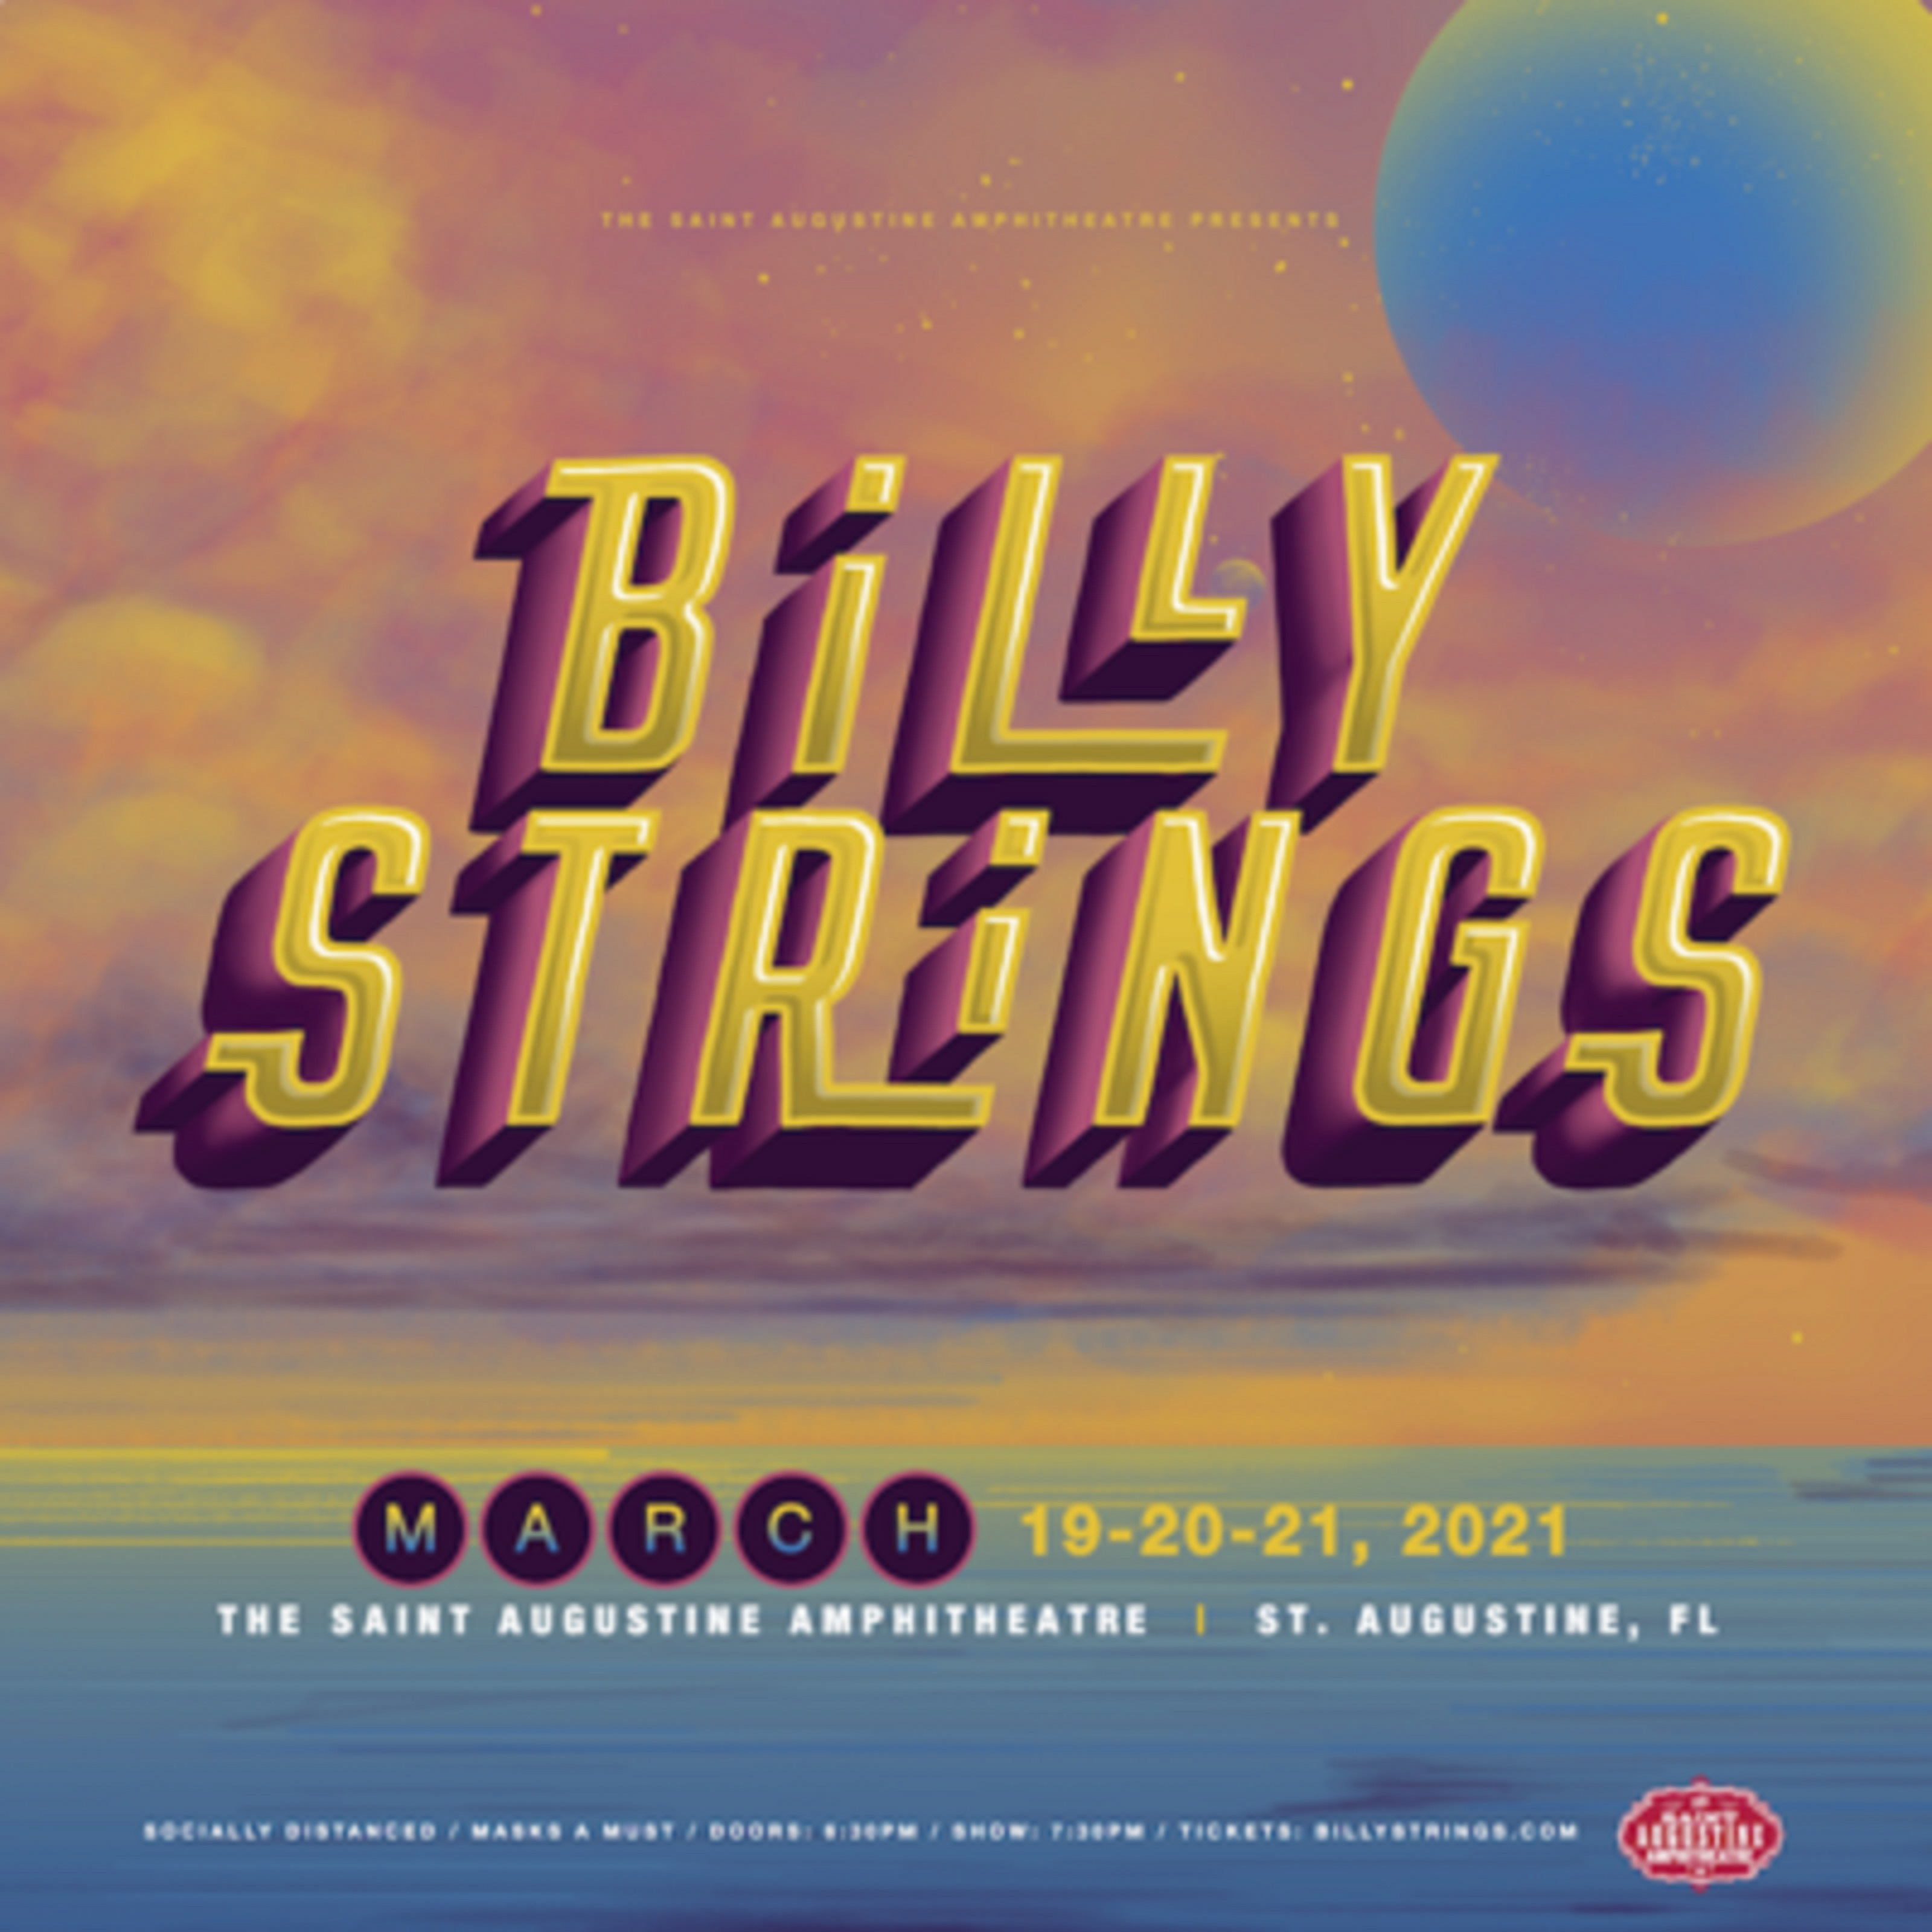 Billy Strings confirms Saint Augustine Amphitheatre socially-distanced concert series March 19-21